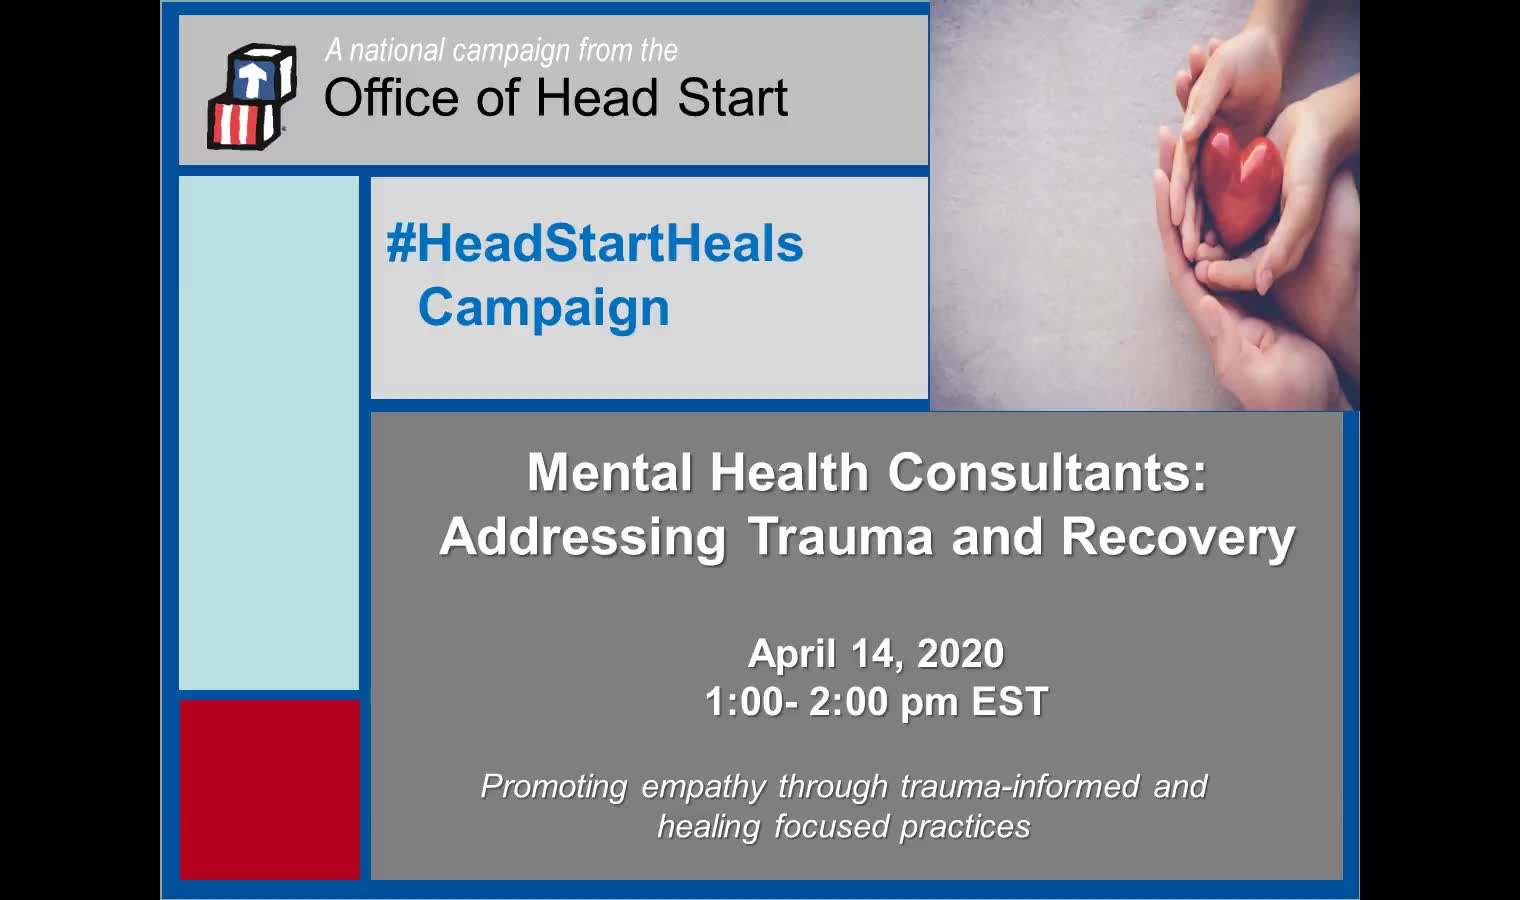 Mental Health Consultants: Addressing Trauma and Recovery